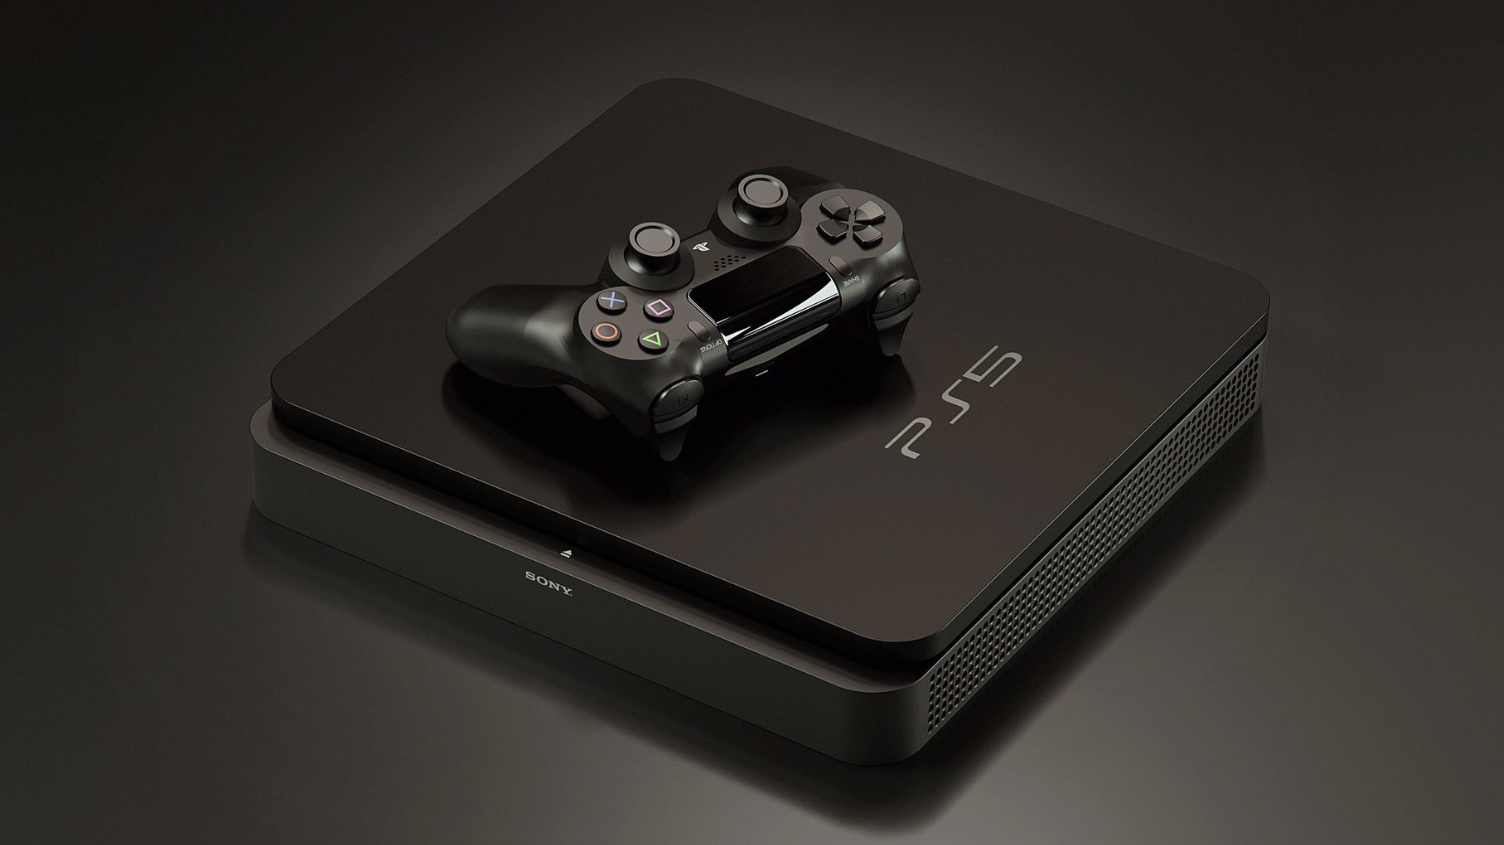 The Sony PlayStation 5's DualSense control works with Android units and PCs